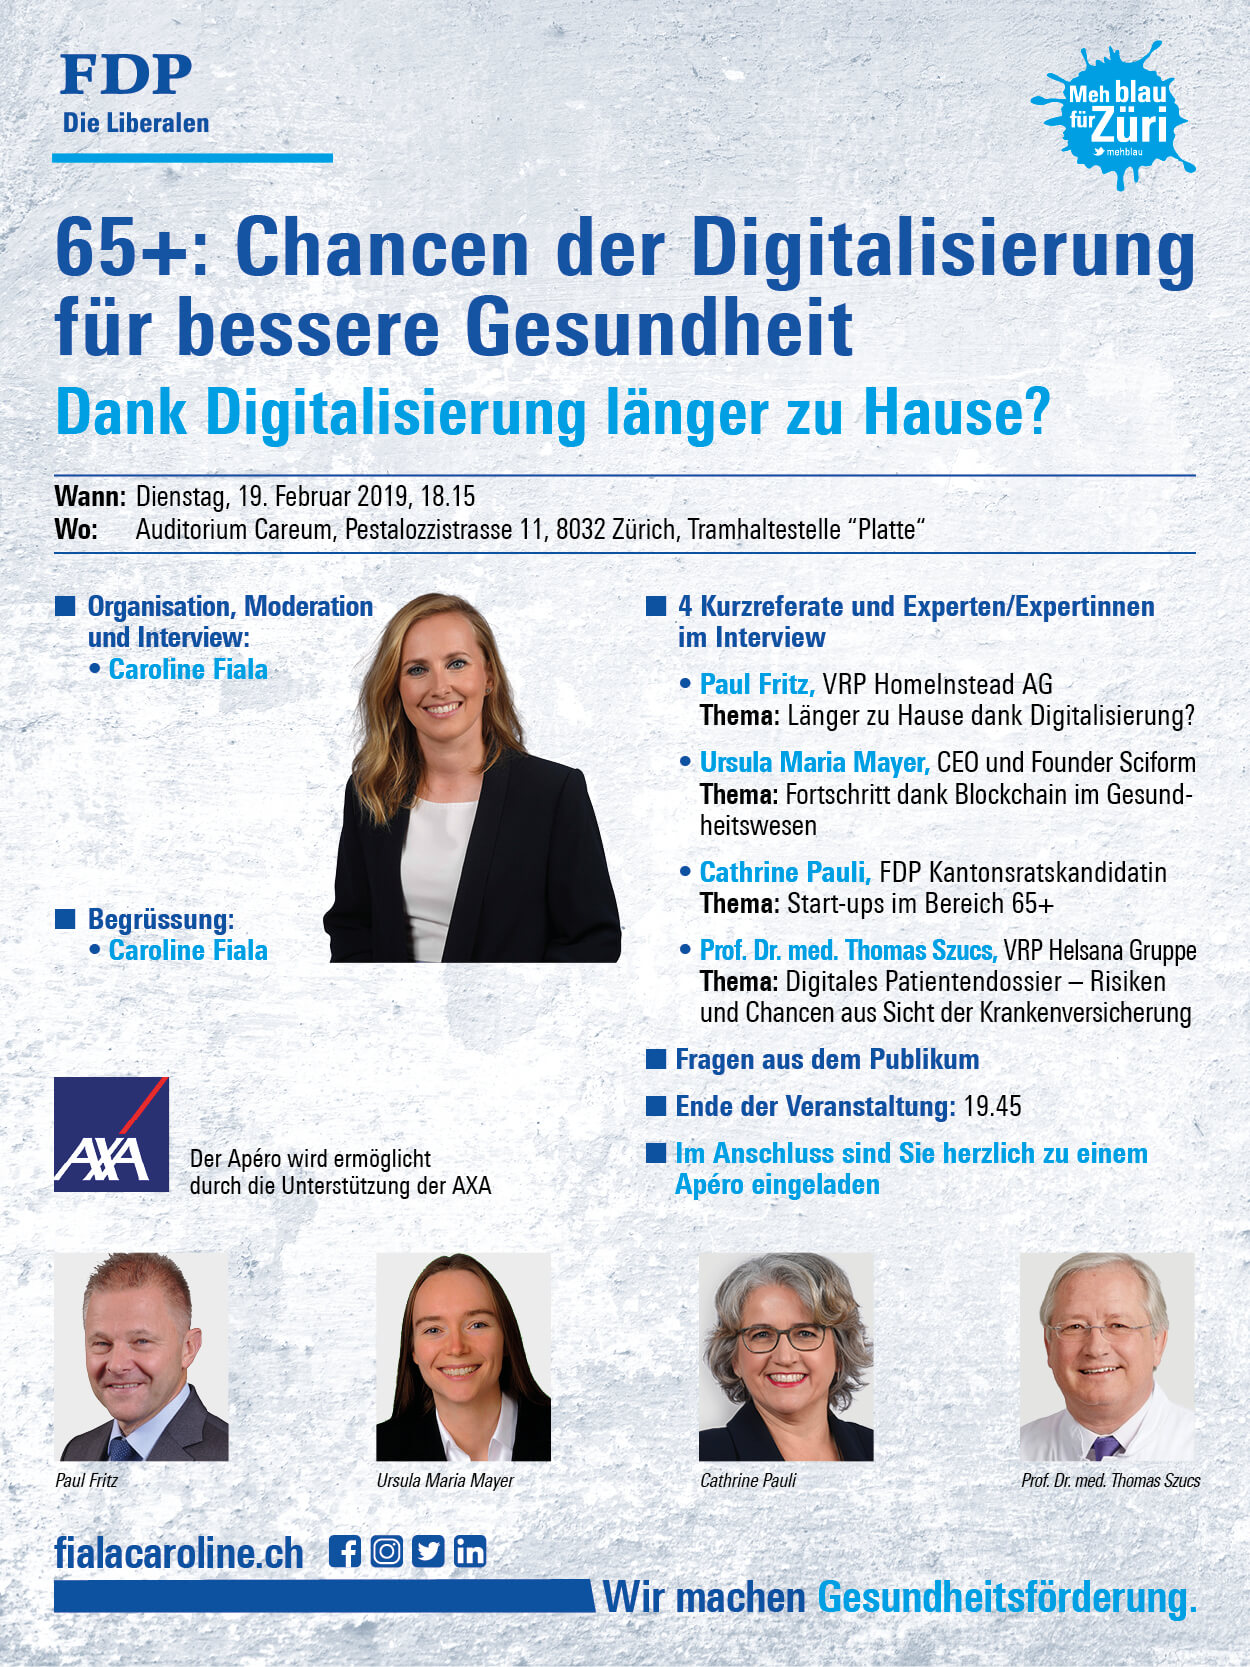 Sciform FDP Digitalisierung Digitalisation Healthcare Blockchain